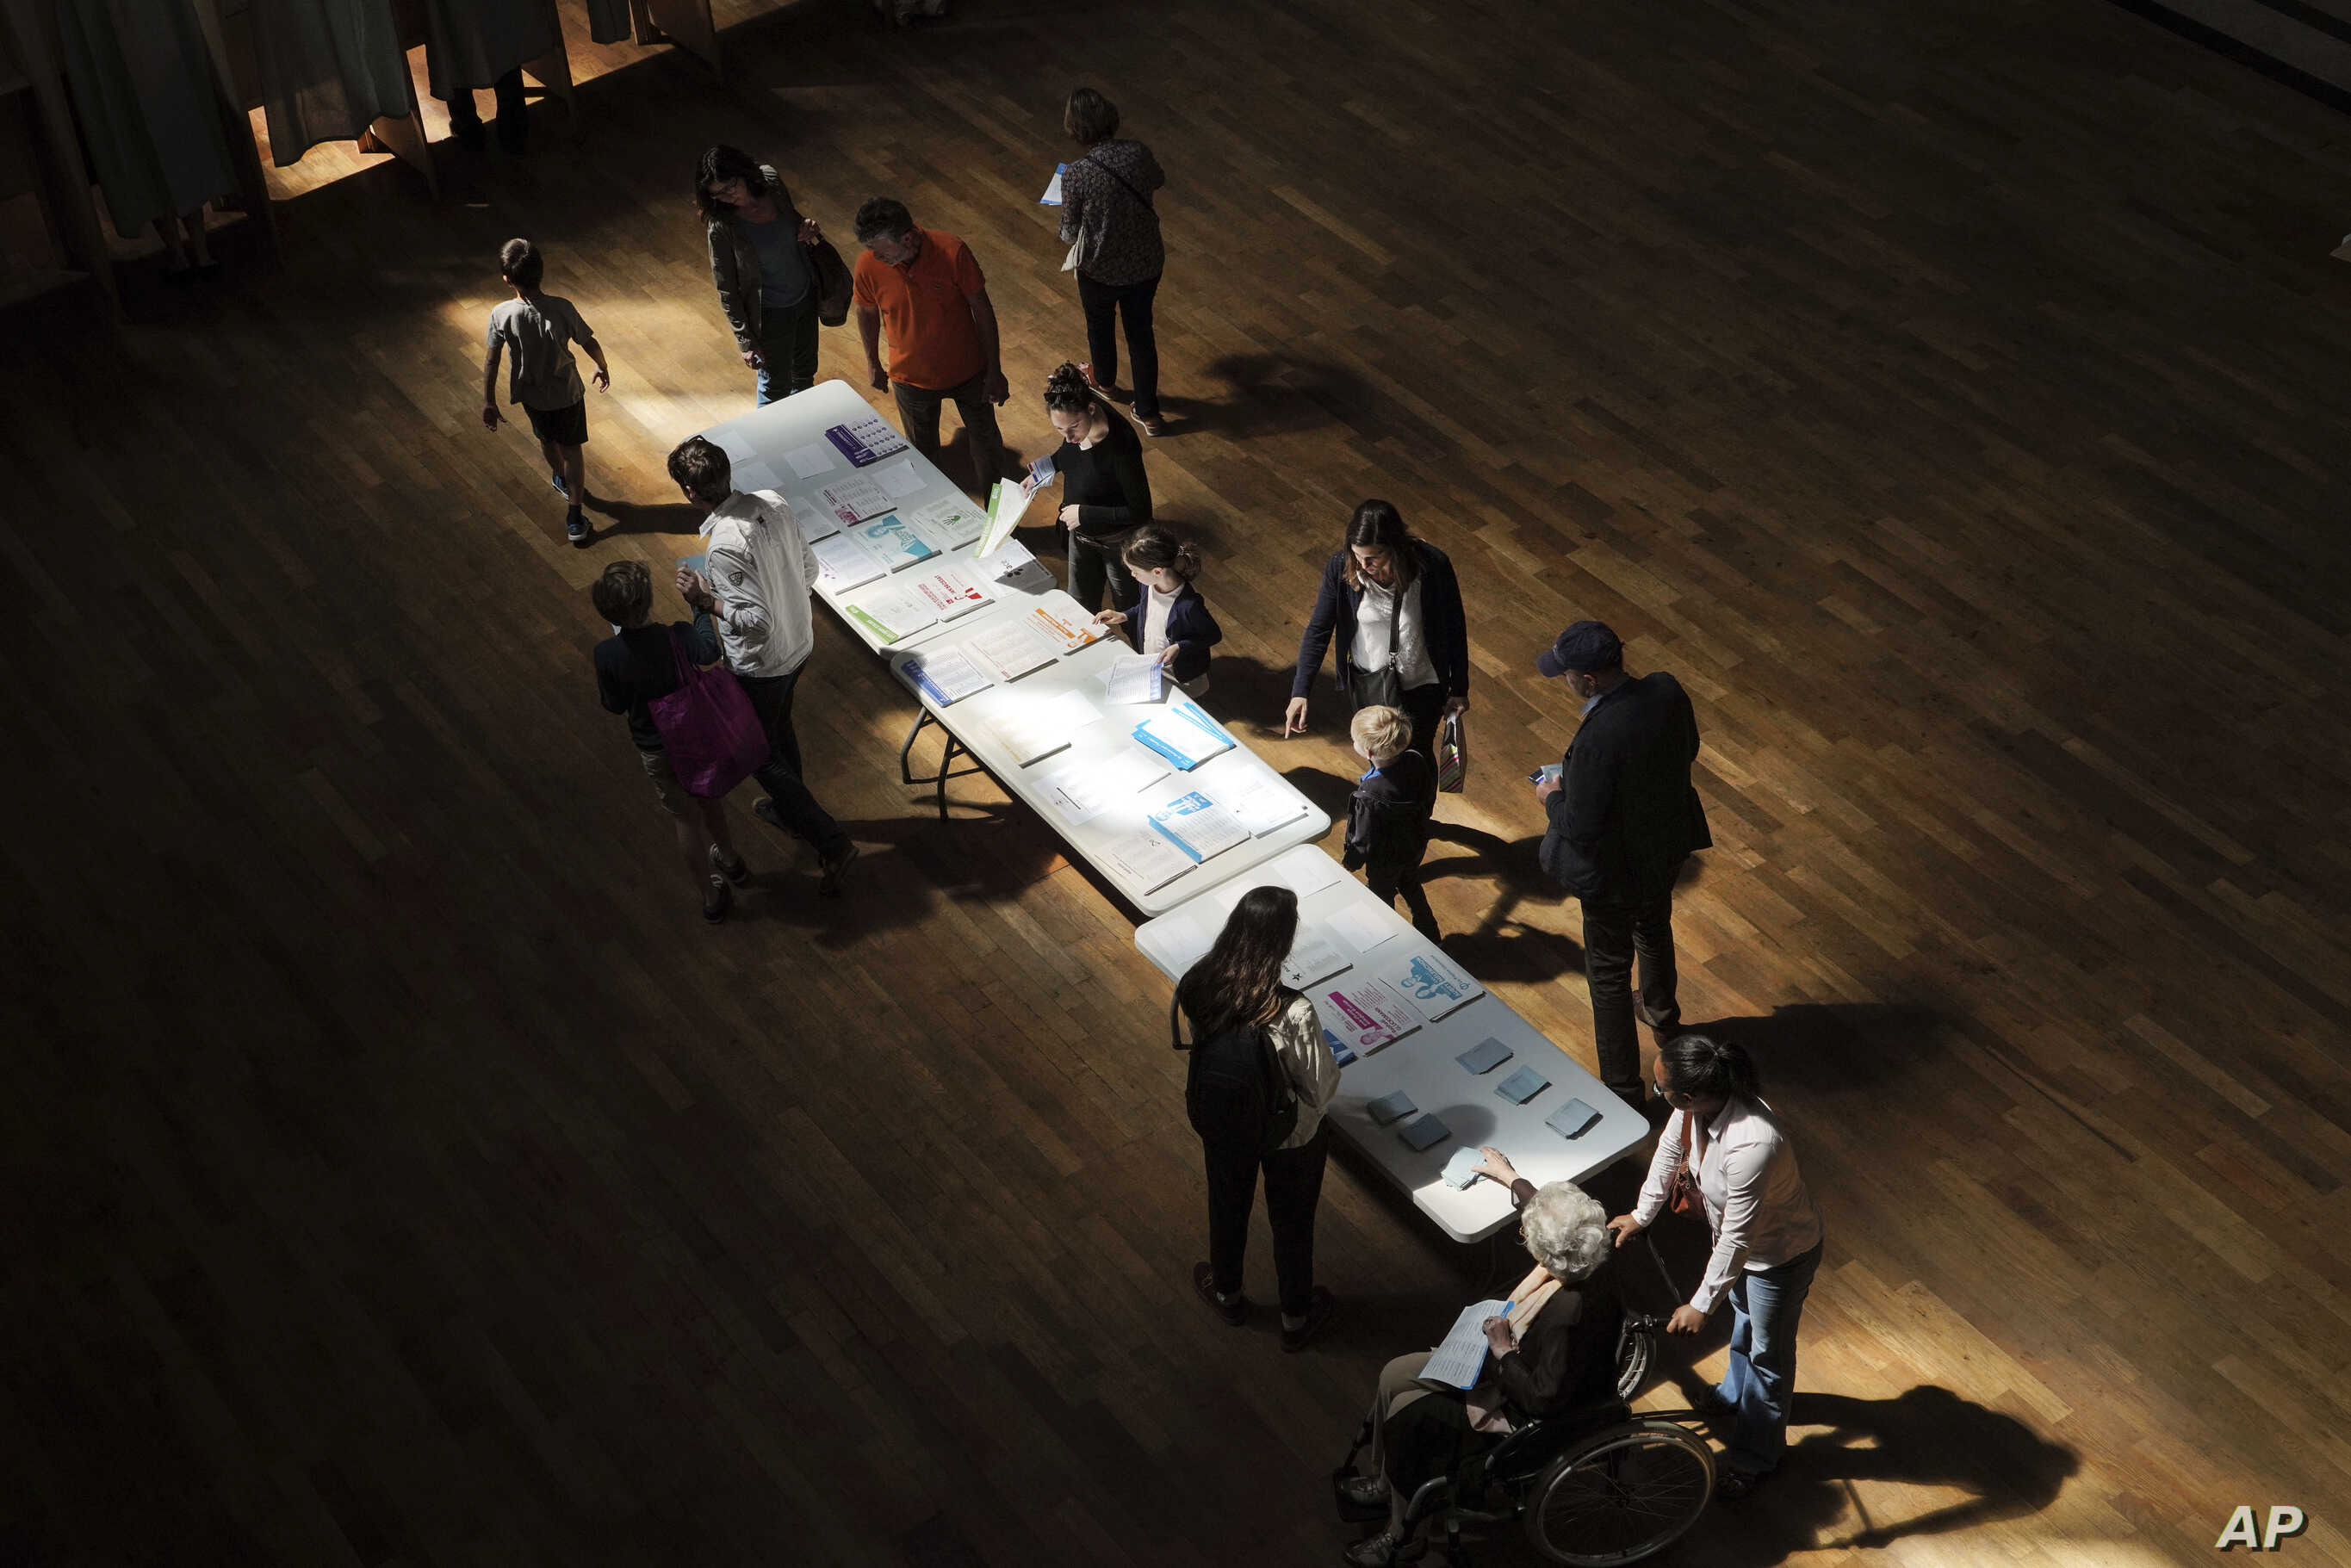 Voters pick up ballots before voting in Lyon, France, May 26, 2019.